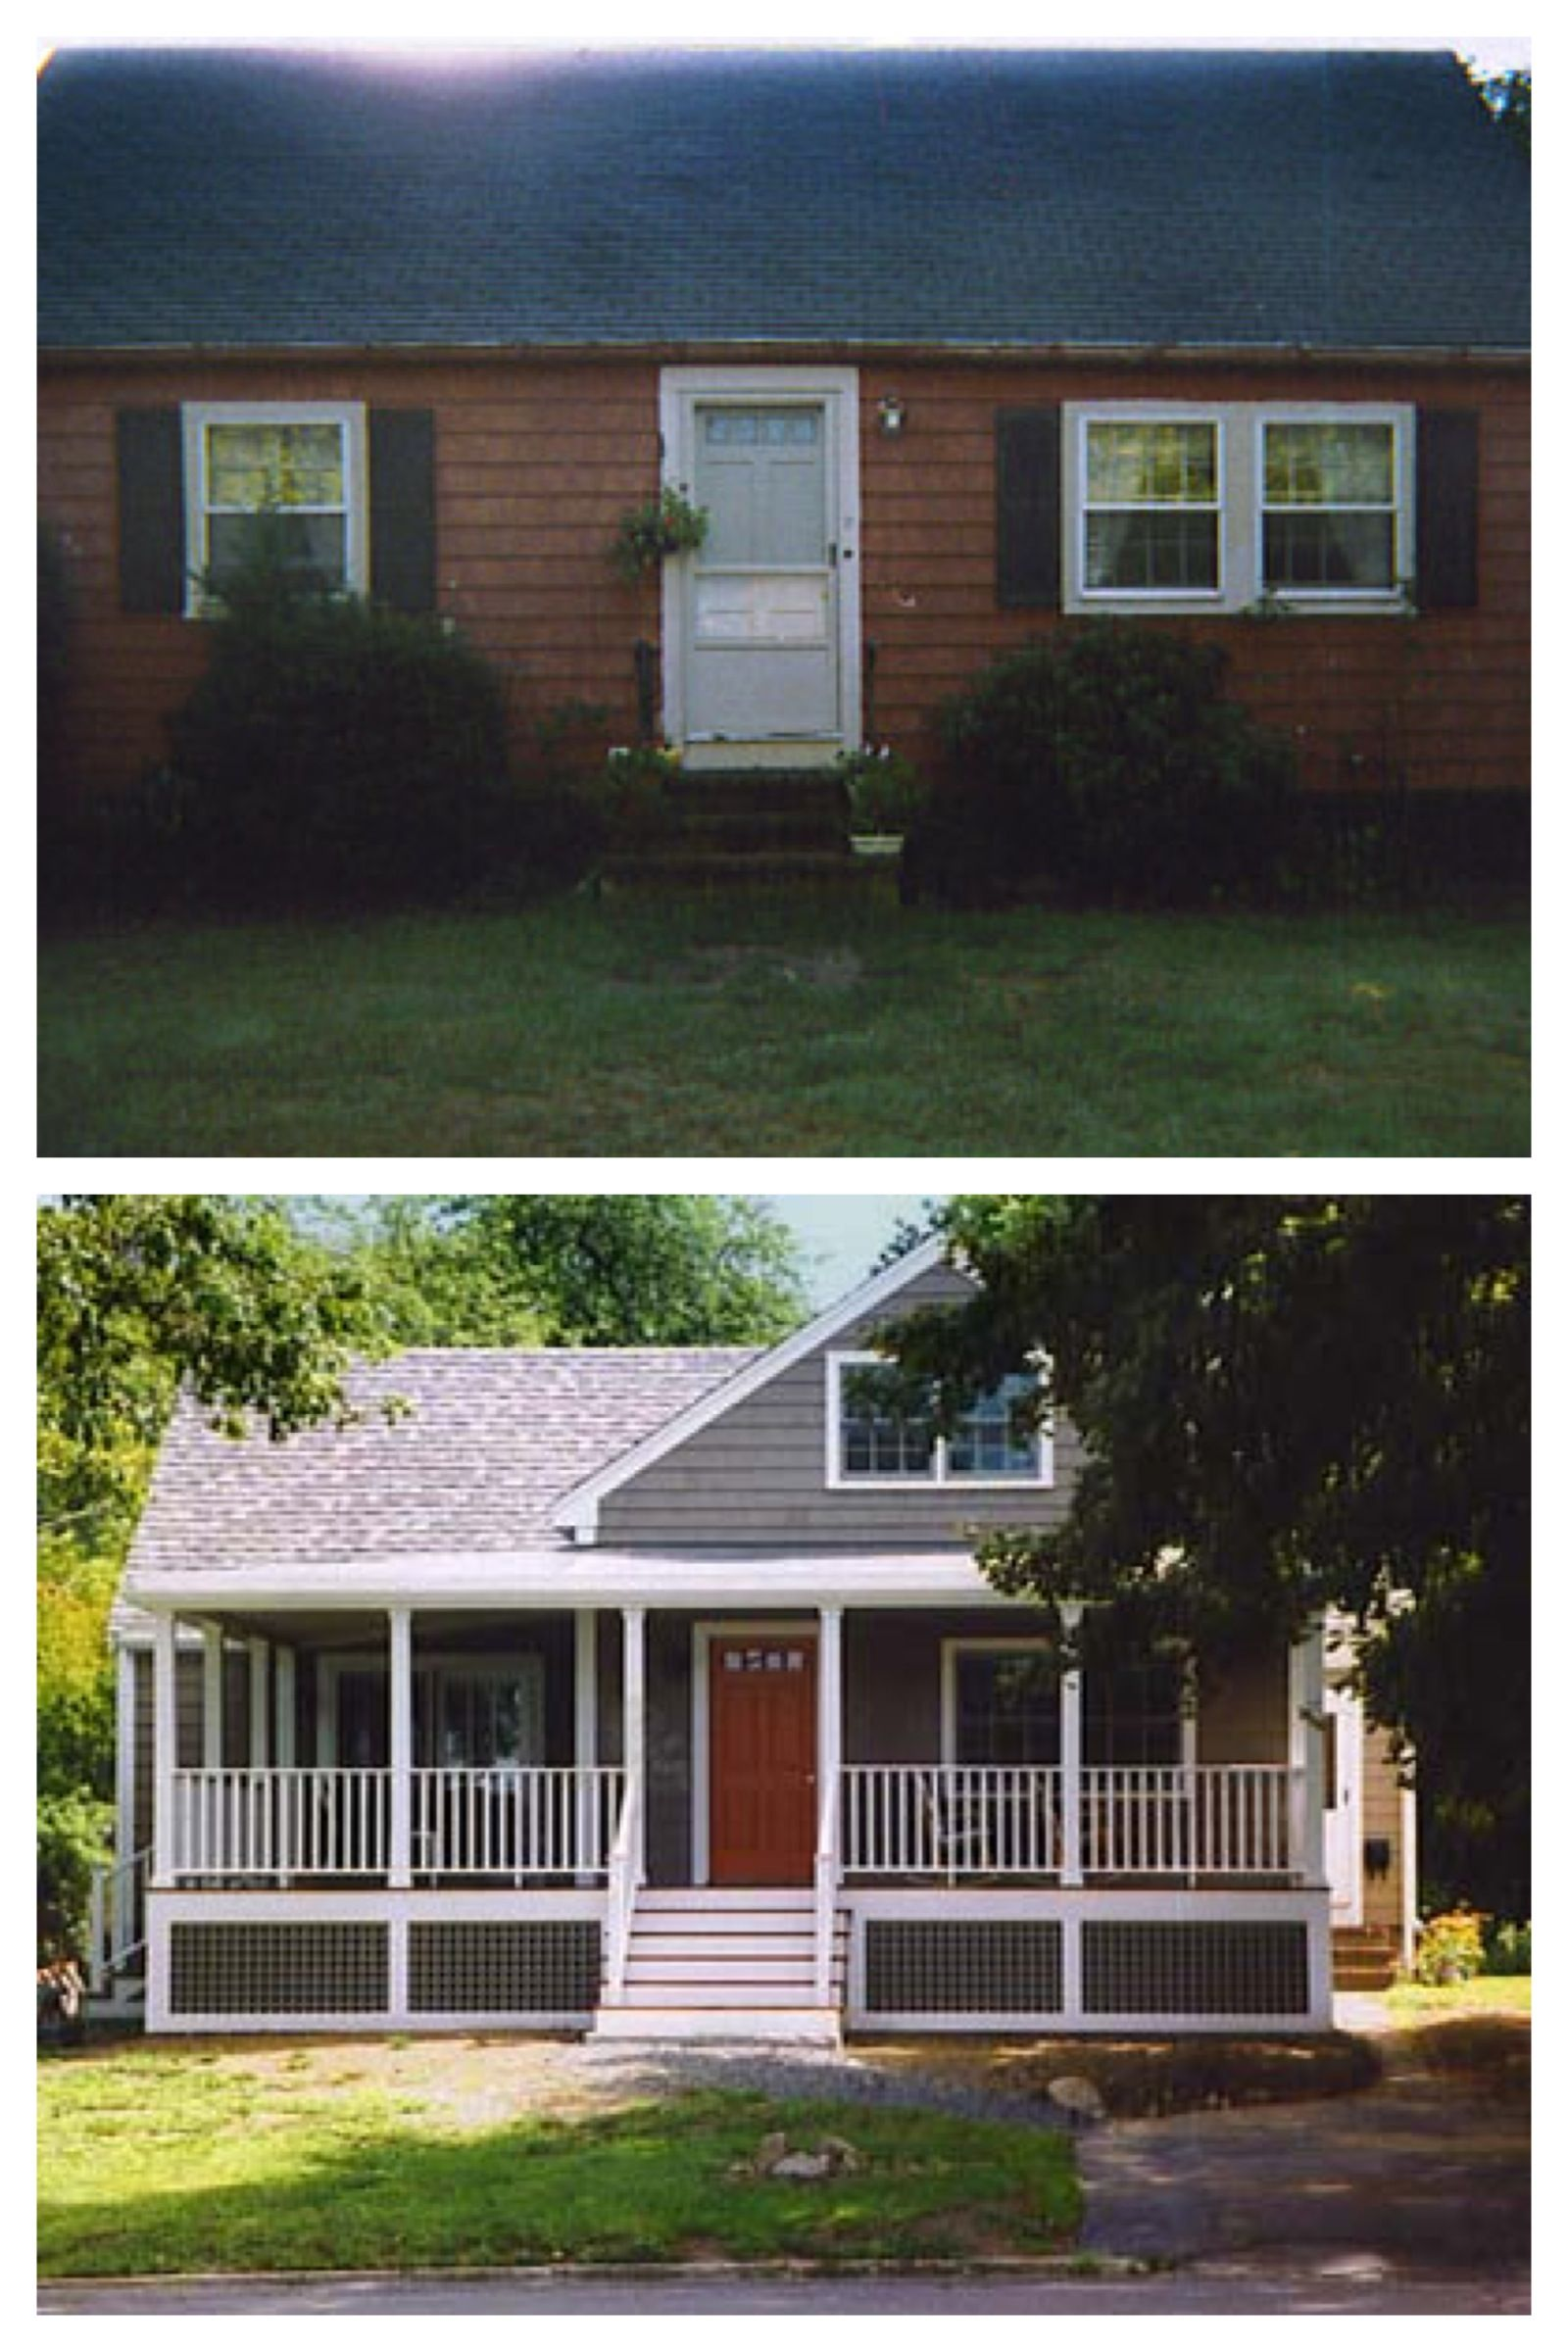 Exterior remodel before and after screened porch exterior remodel home remodeling exterior Before and after home exteriors remodels